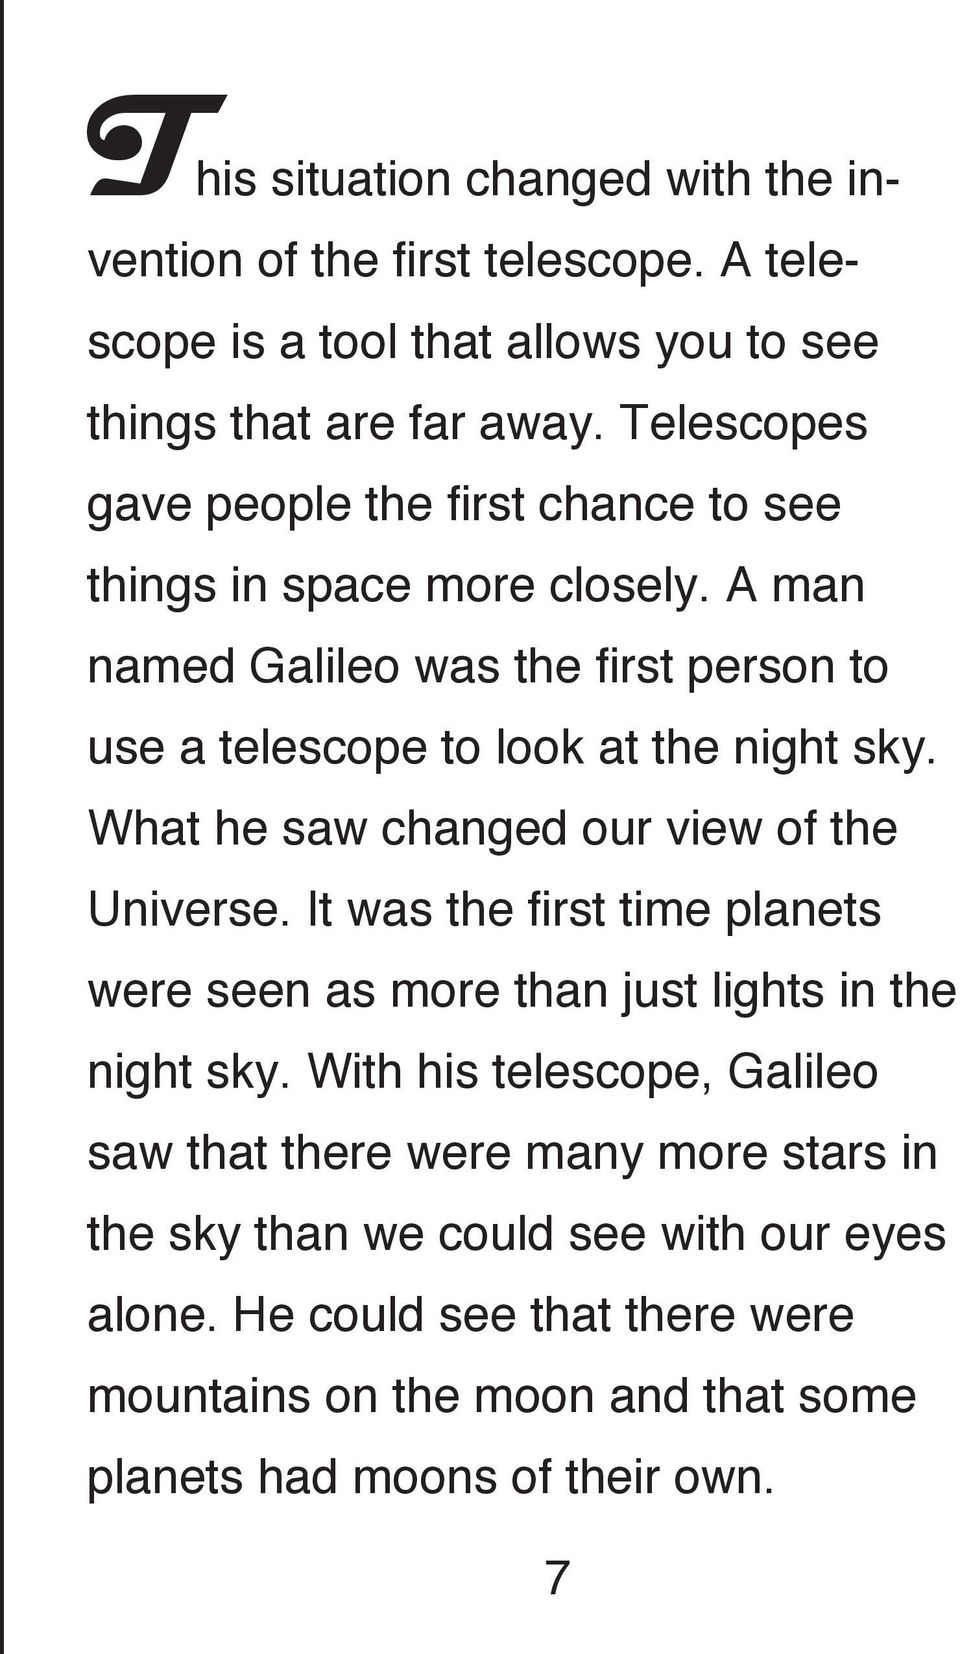 A man named Galileo was the first person to use a telescope to look at the night sky. What he saw changed our view of the Universe.